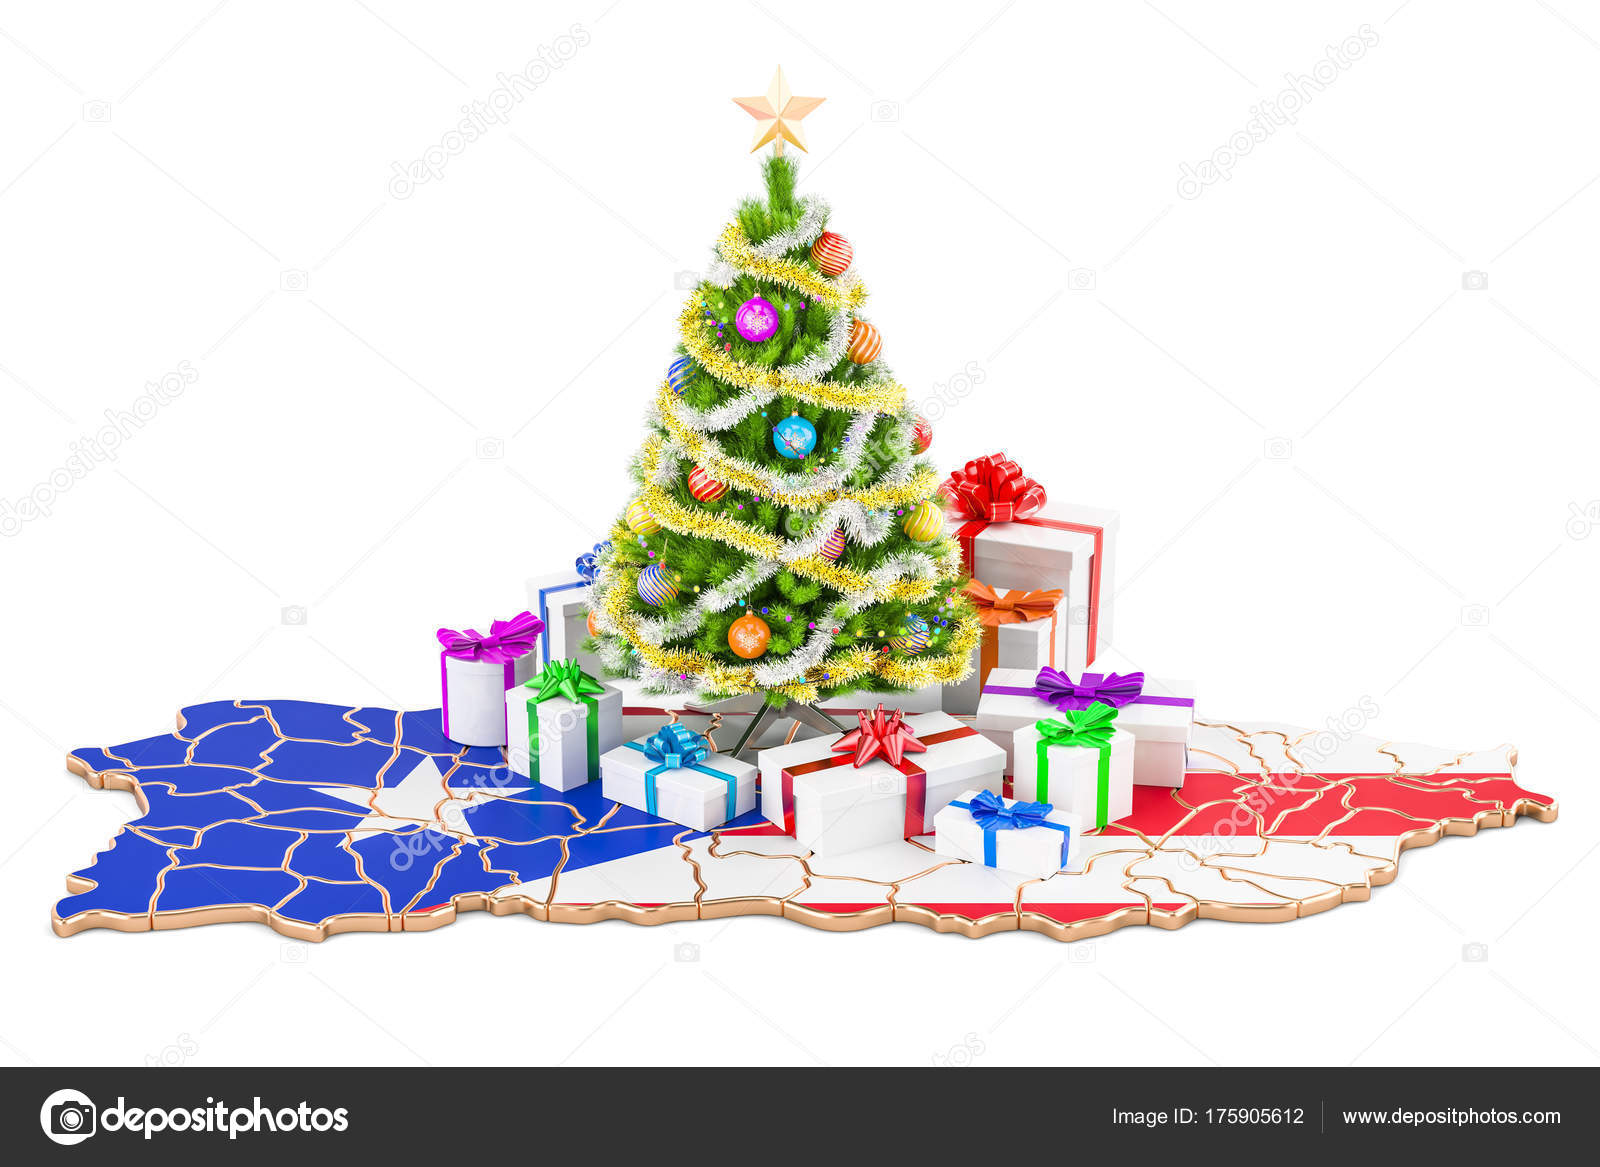 Christmas In Puerto Rico.Christmas And New Year Holidays In Puerto Rico Concept 3d